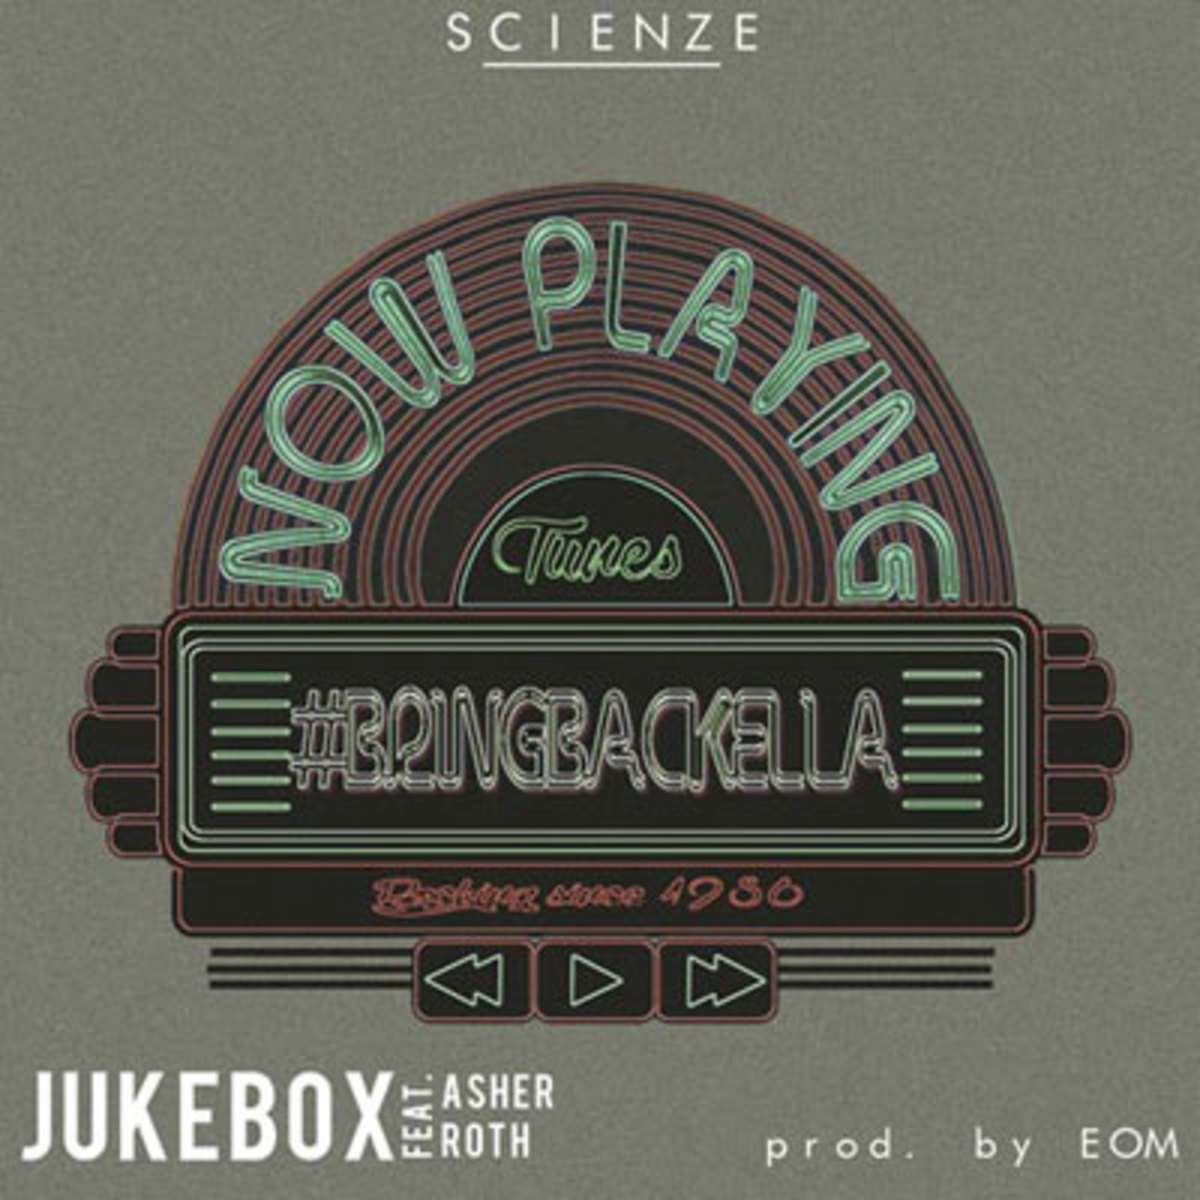 scienze-jukebox.jpg